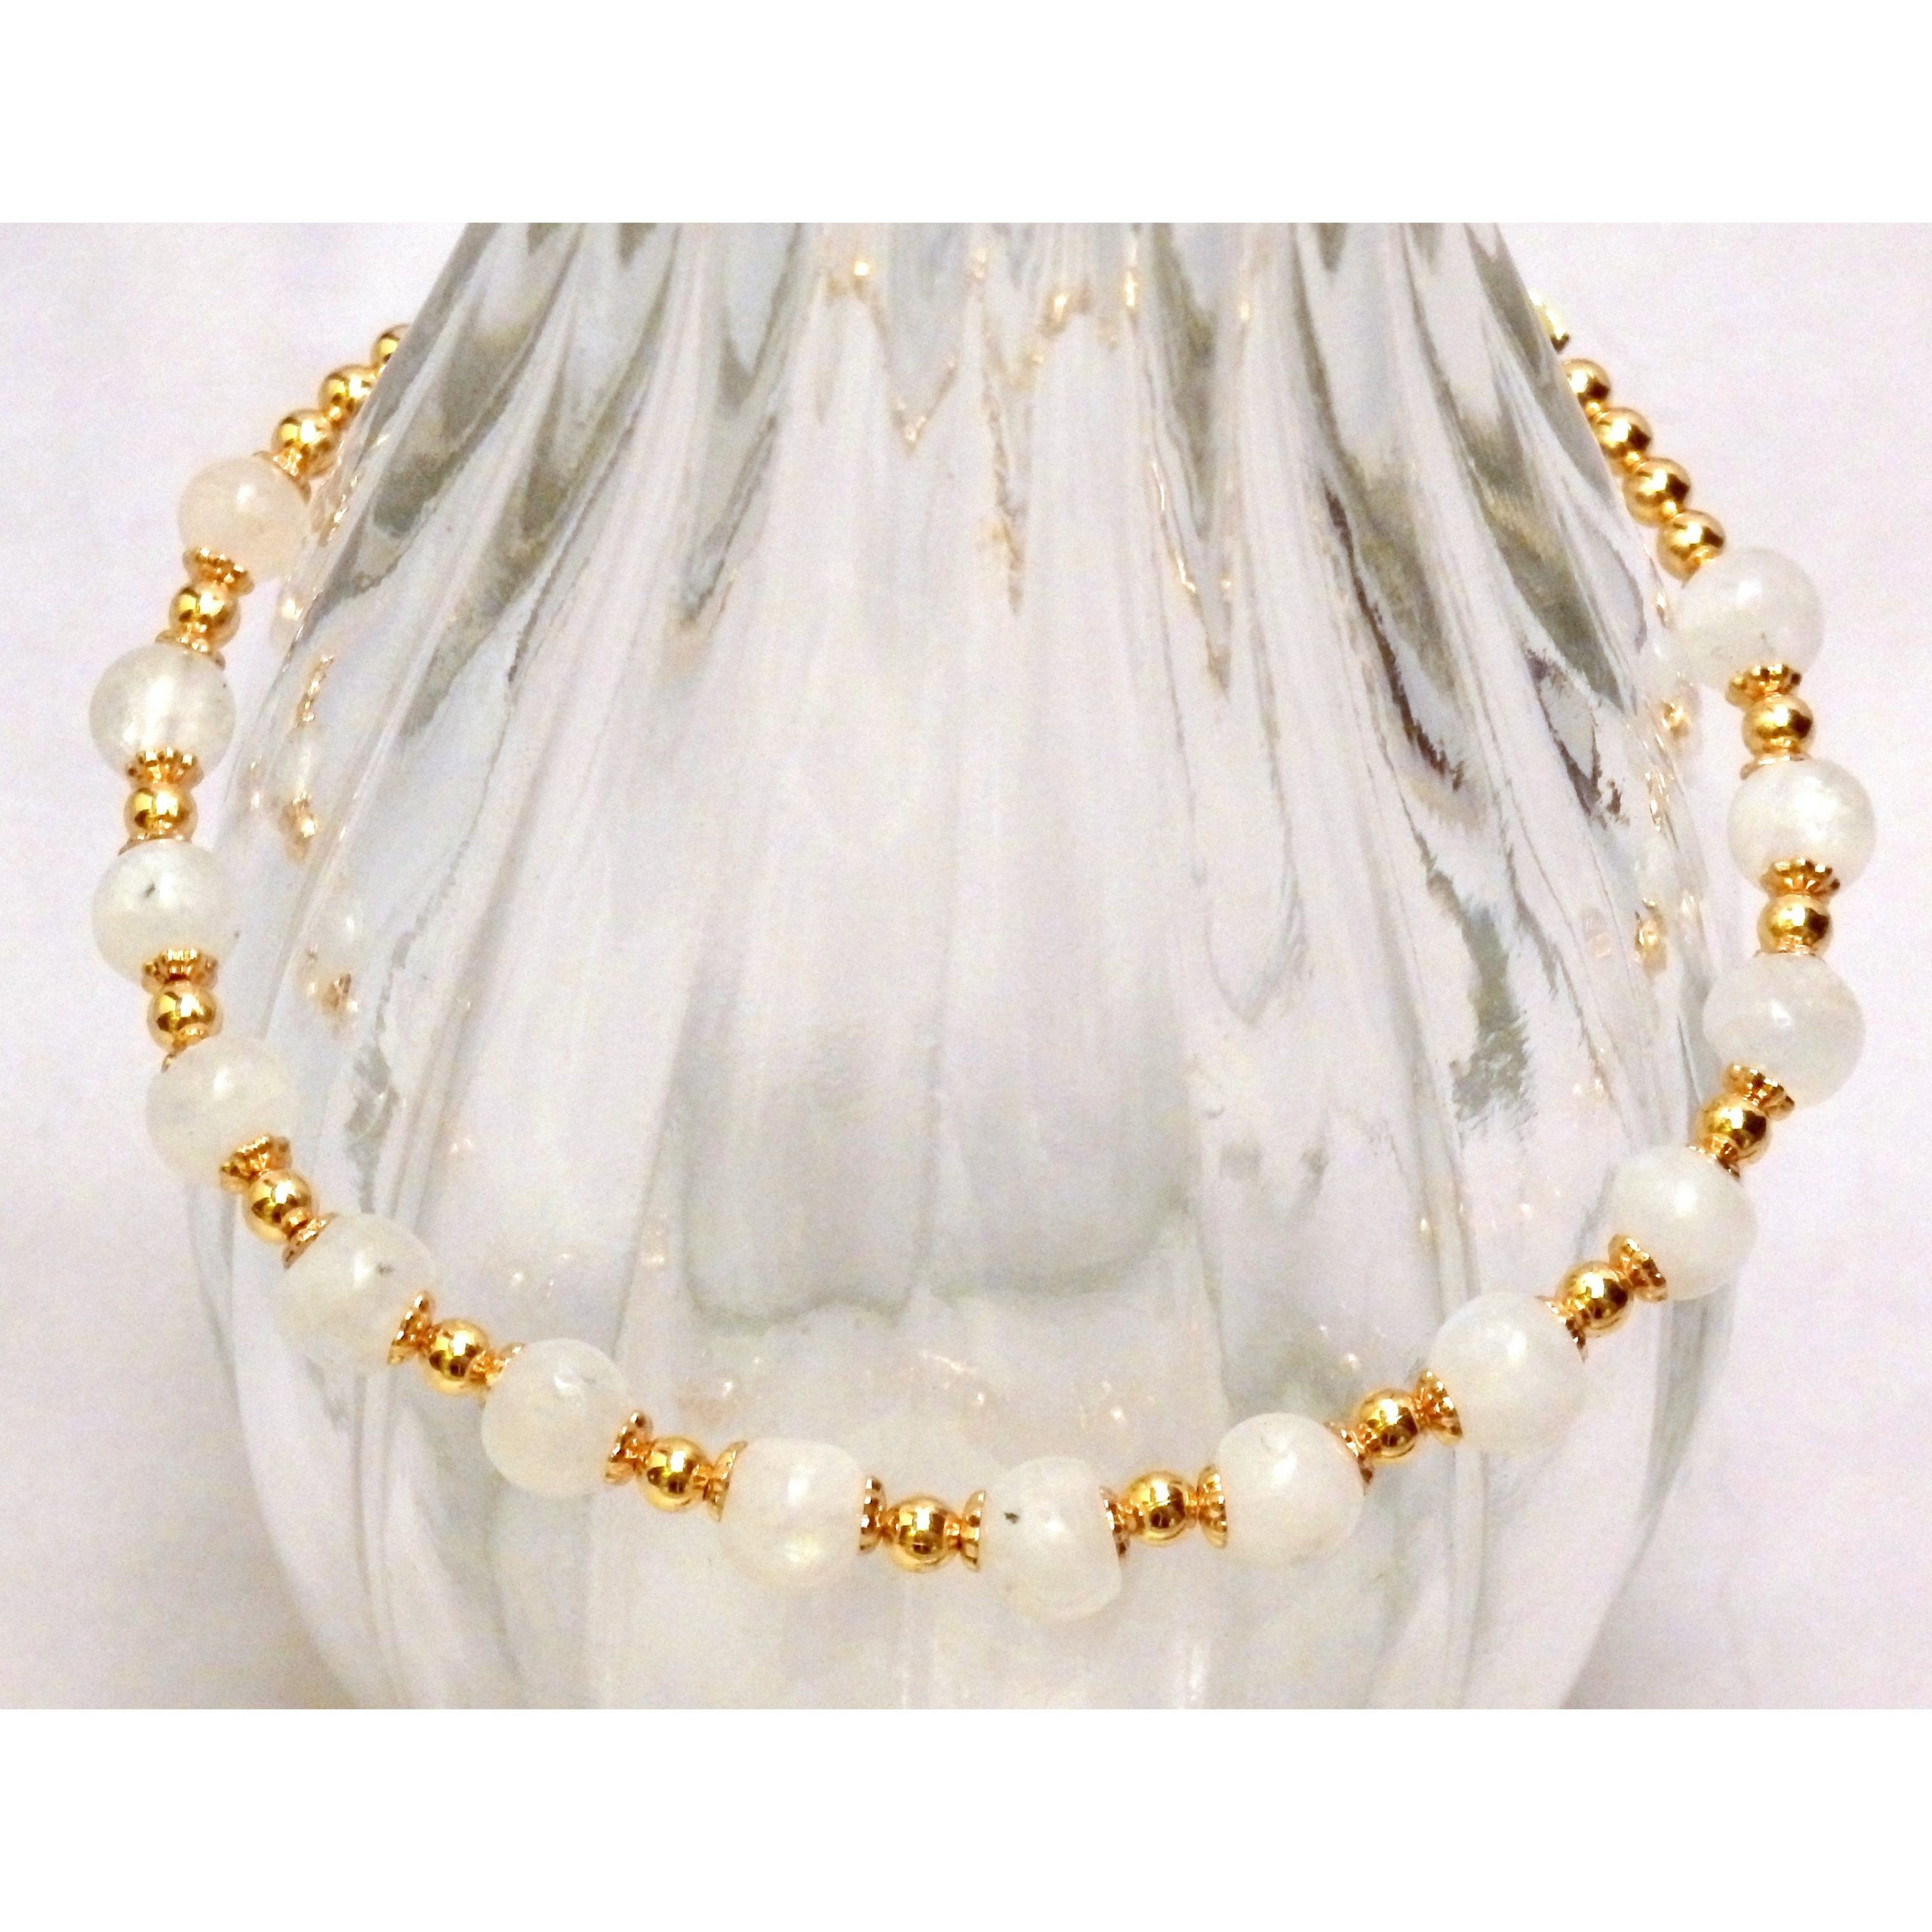 Moonstone and Goldtone Beaded Bracelet 1203